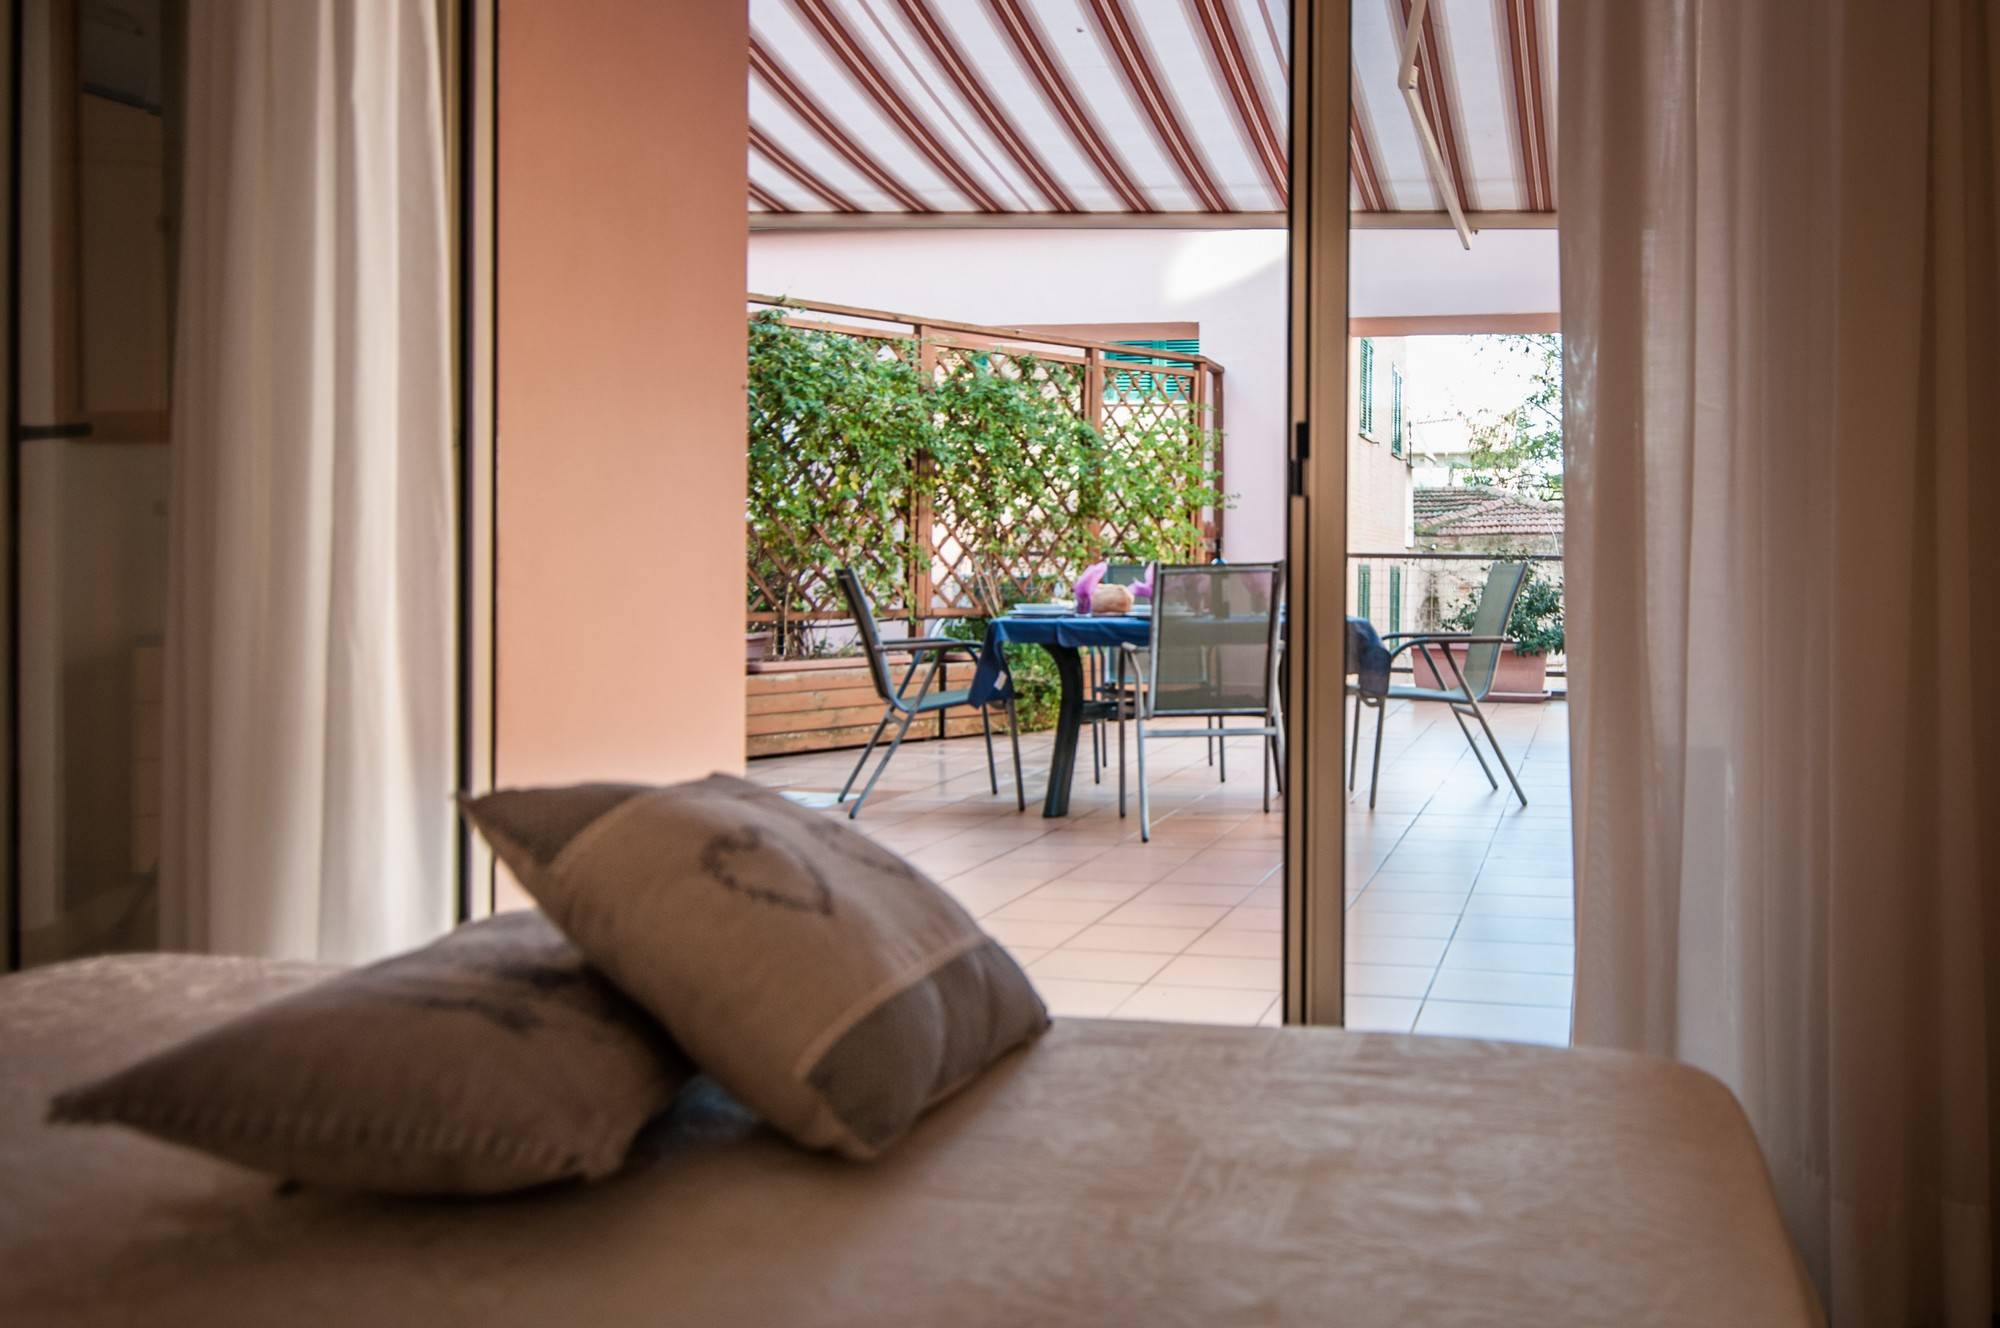 I  bilocali con terrazza o balcone – Terrace/Balcony Two-Room Apartment